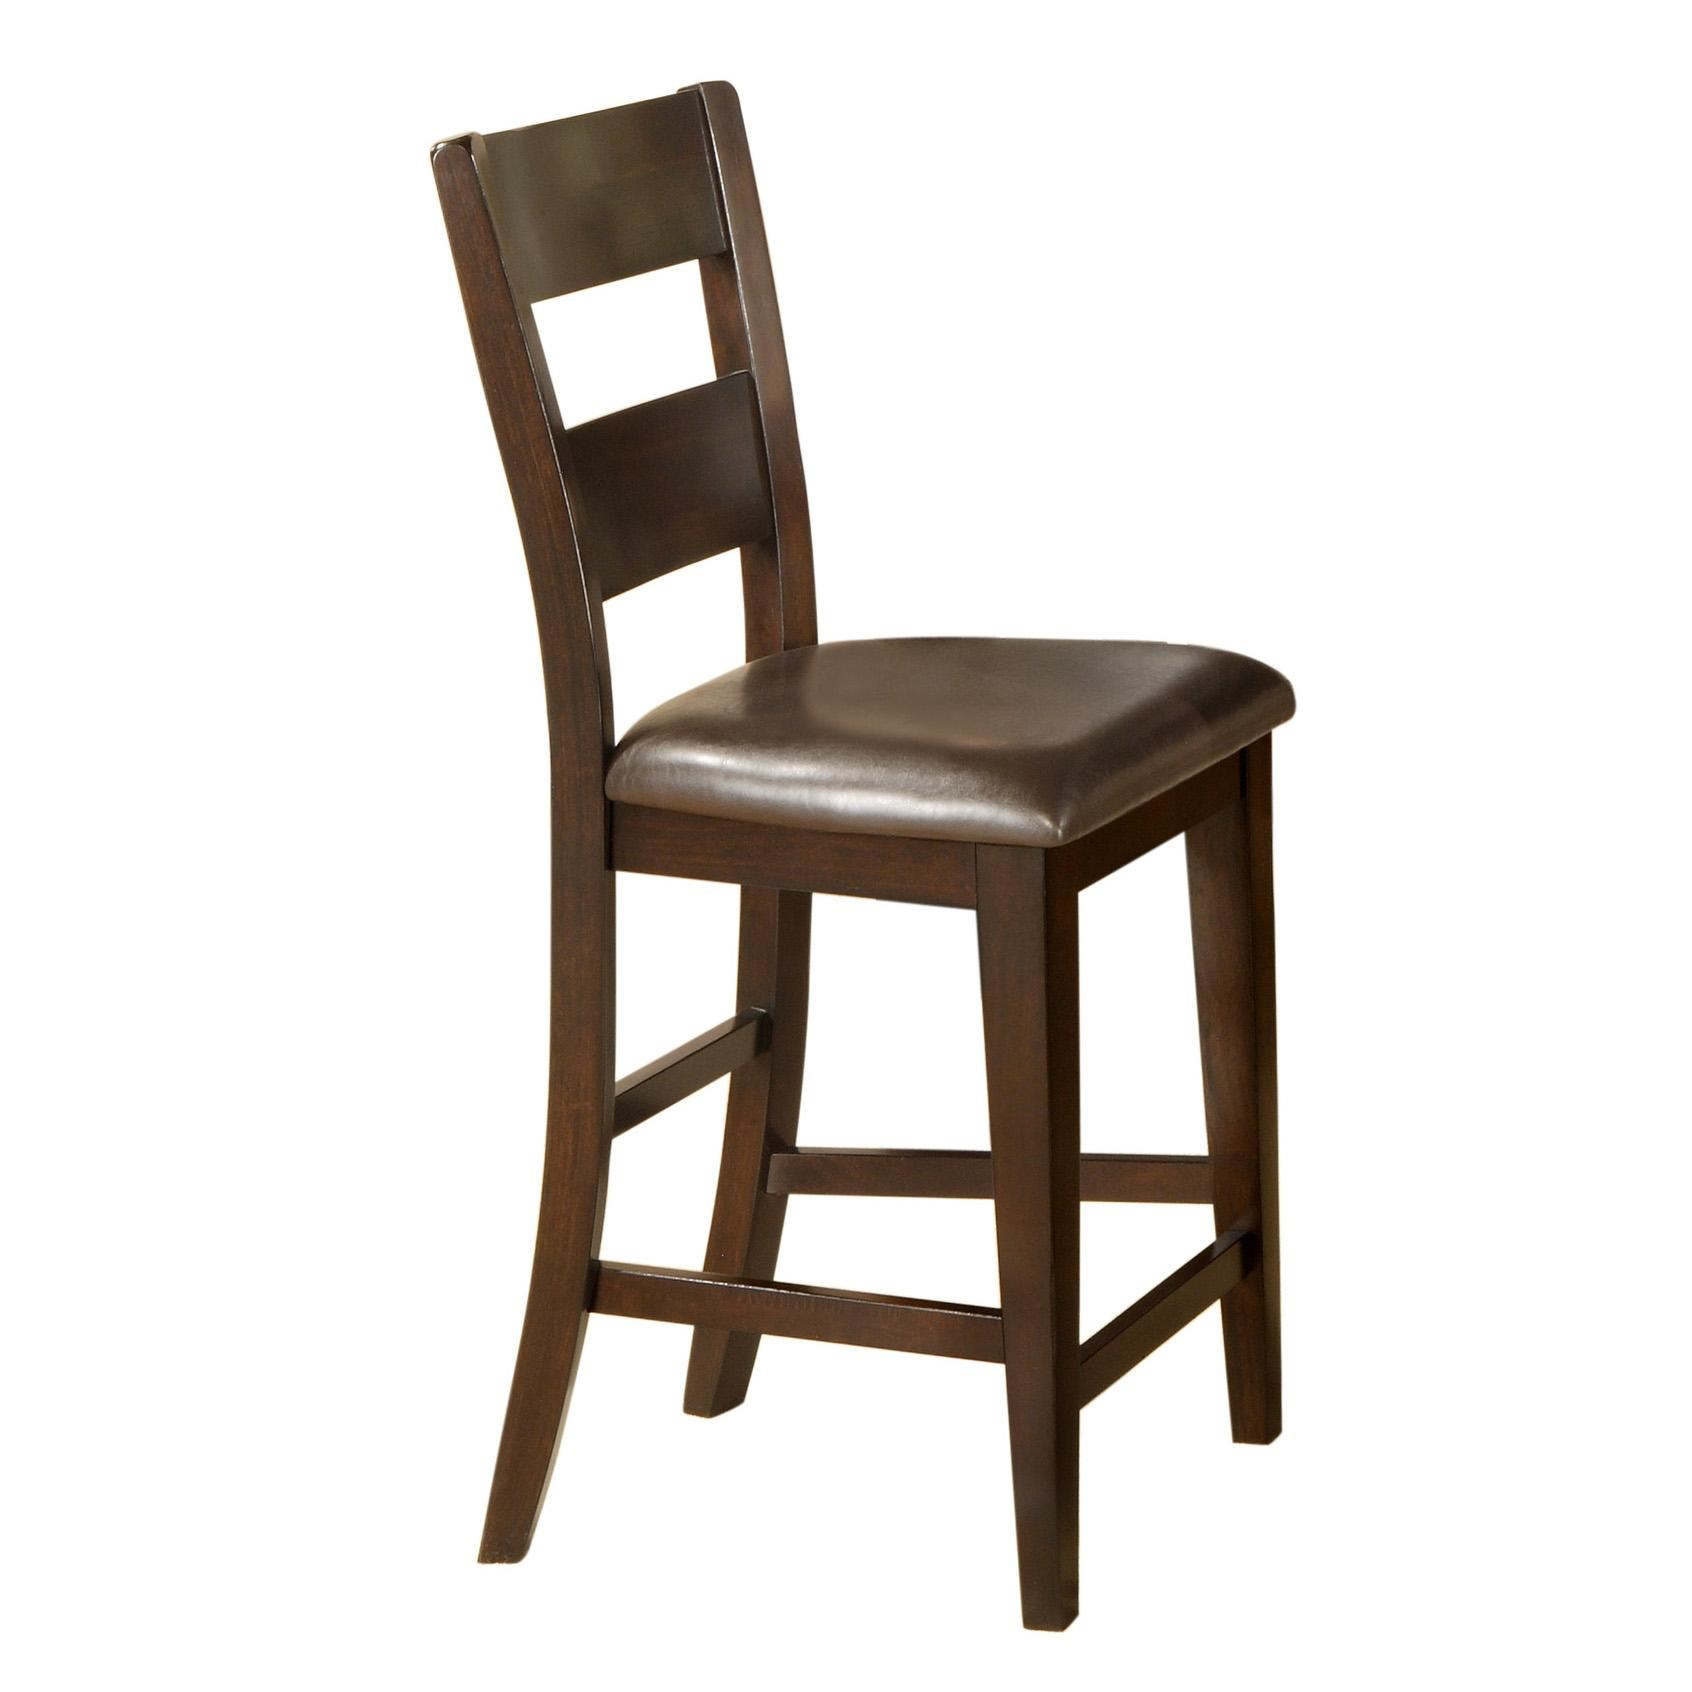 Holland House Willis Ladder Back Pub Chair With Upholstered Seat